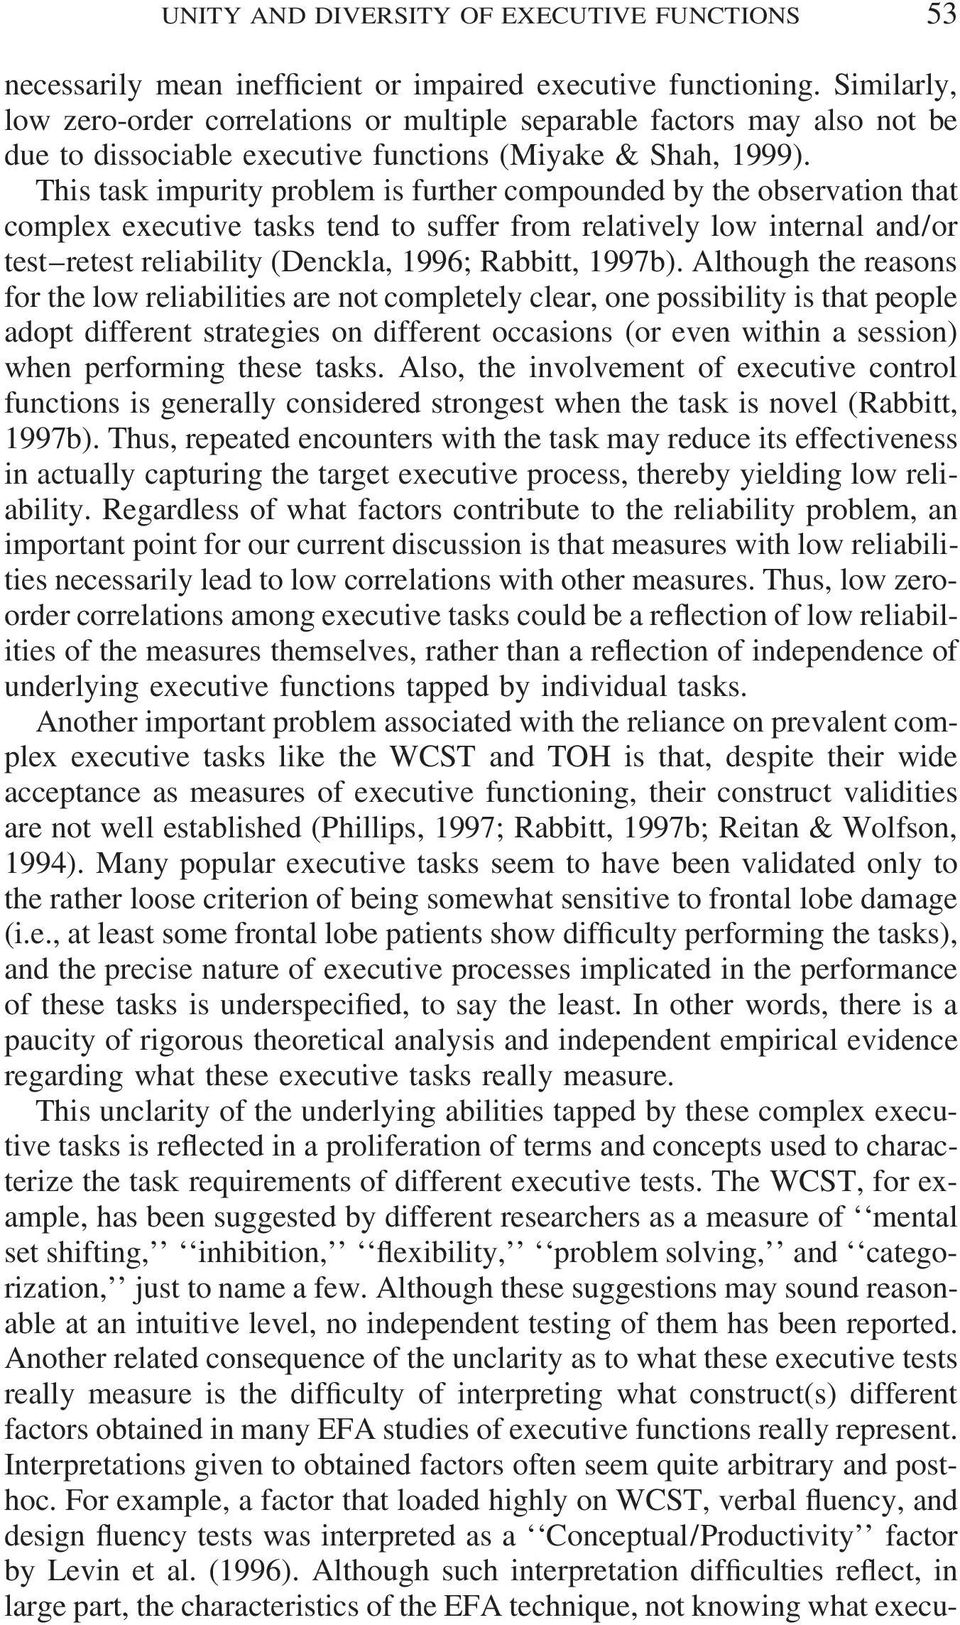 This task impurity problem is further compounded by the observation that complex executive tasks tend to suffer from relatively low internal and/or test retest reliability (Denckla, 1996; Rabbitt,